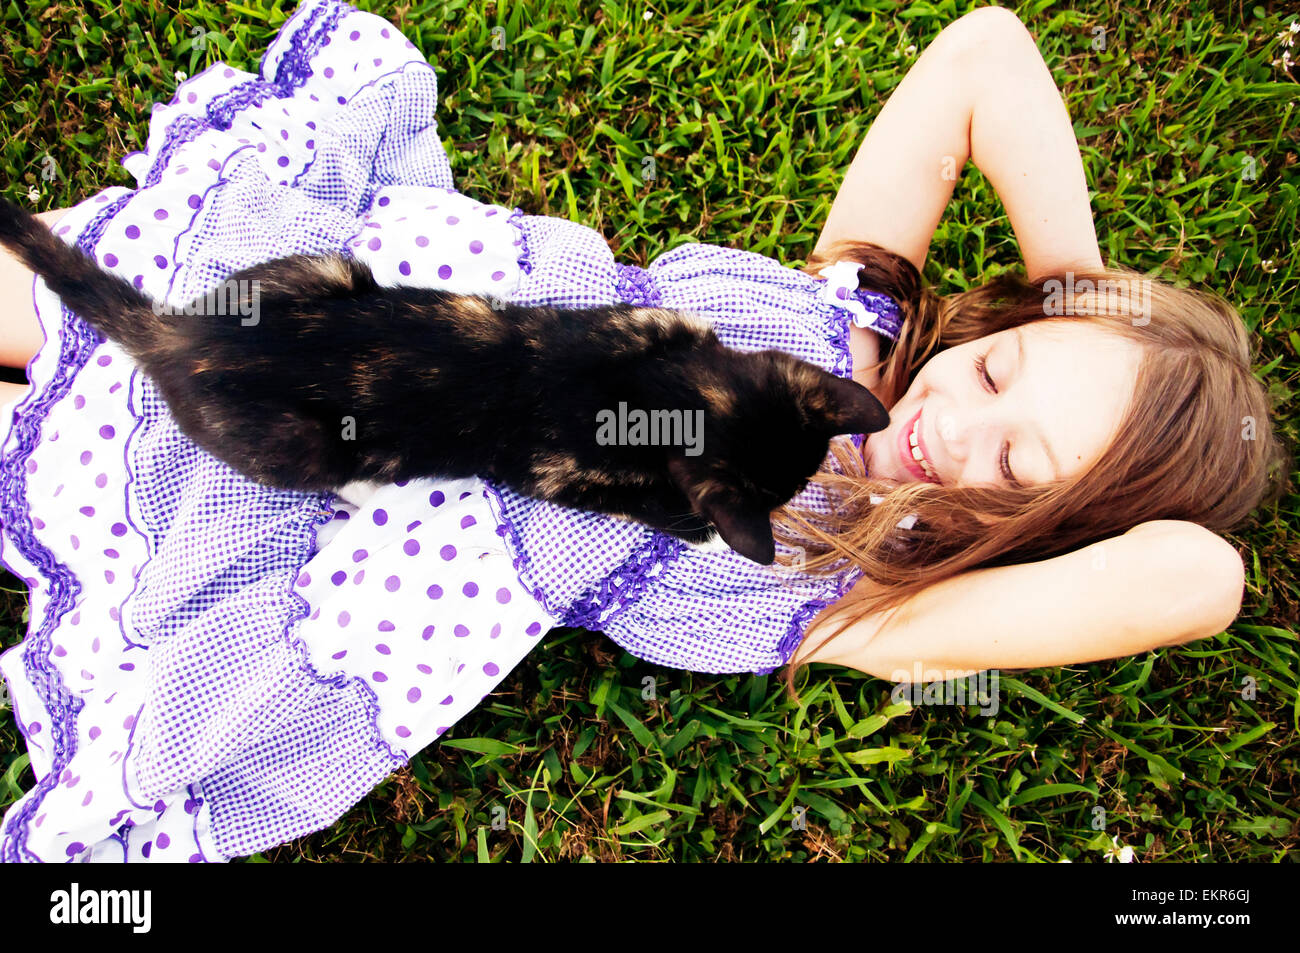 girl lying on grass with black calico cat - Stock Image